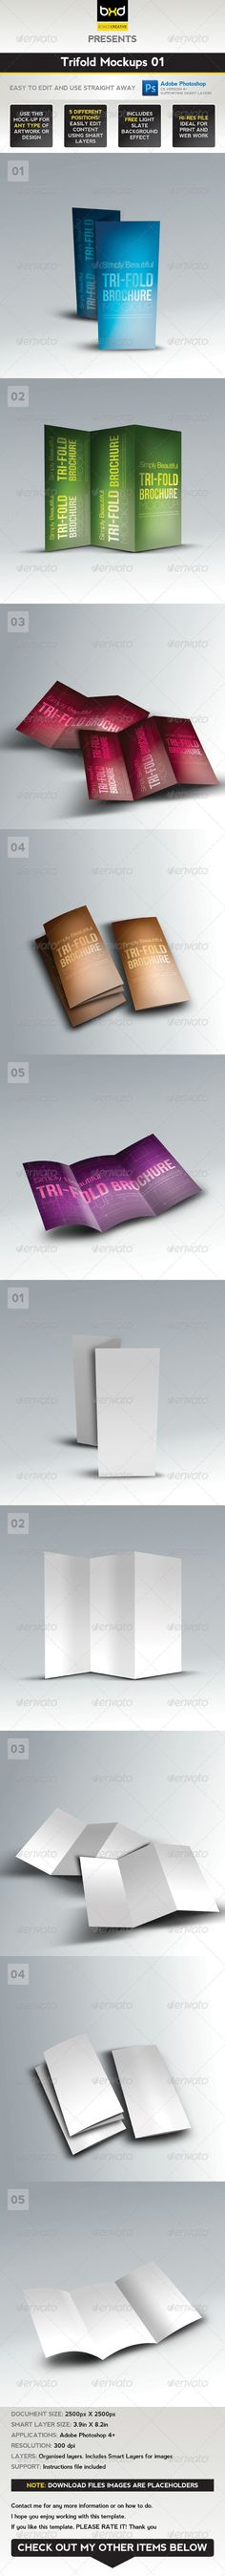 Buy Trifold Brochure Mock-ups 01 by BoxedCreative on GraphicRiver. This is a photo-realistic trifold brochure mock-up that can be used for any type of artwork/design. The clean, crisp,. Graphic Design Templates, Print Templates, Brochure Inspiration, Business Flyer Templates, Artwork Design, Business Card Logo, Mockup, Colorful Backgrounds, Layout